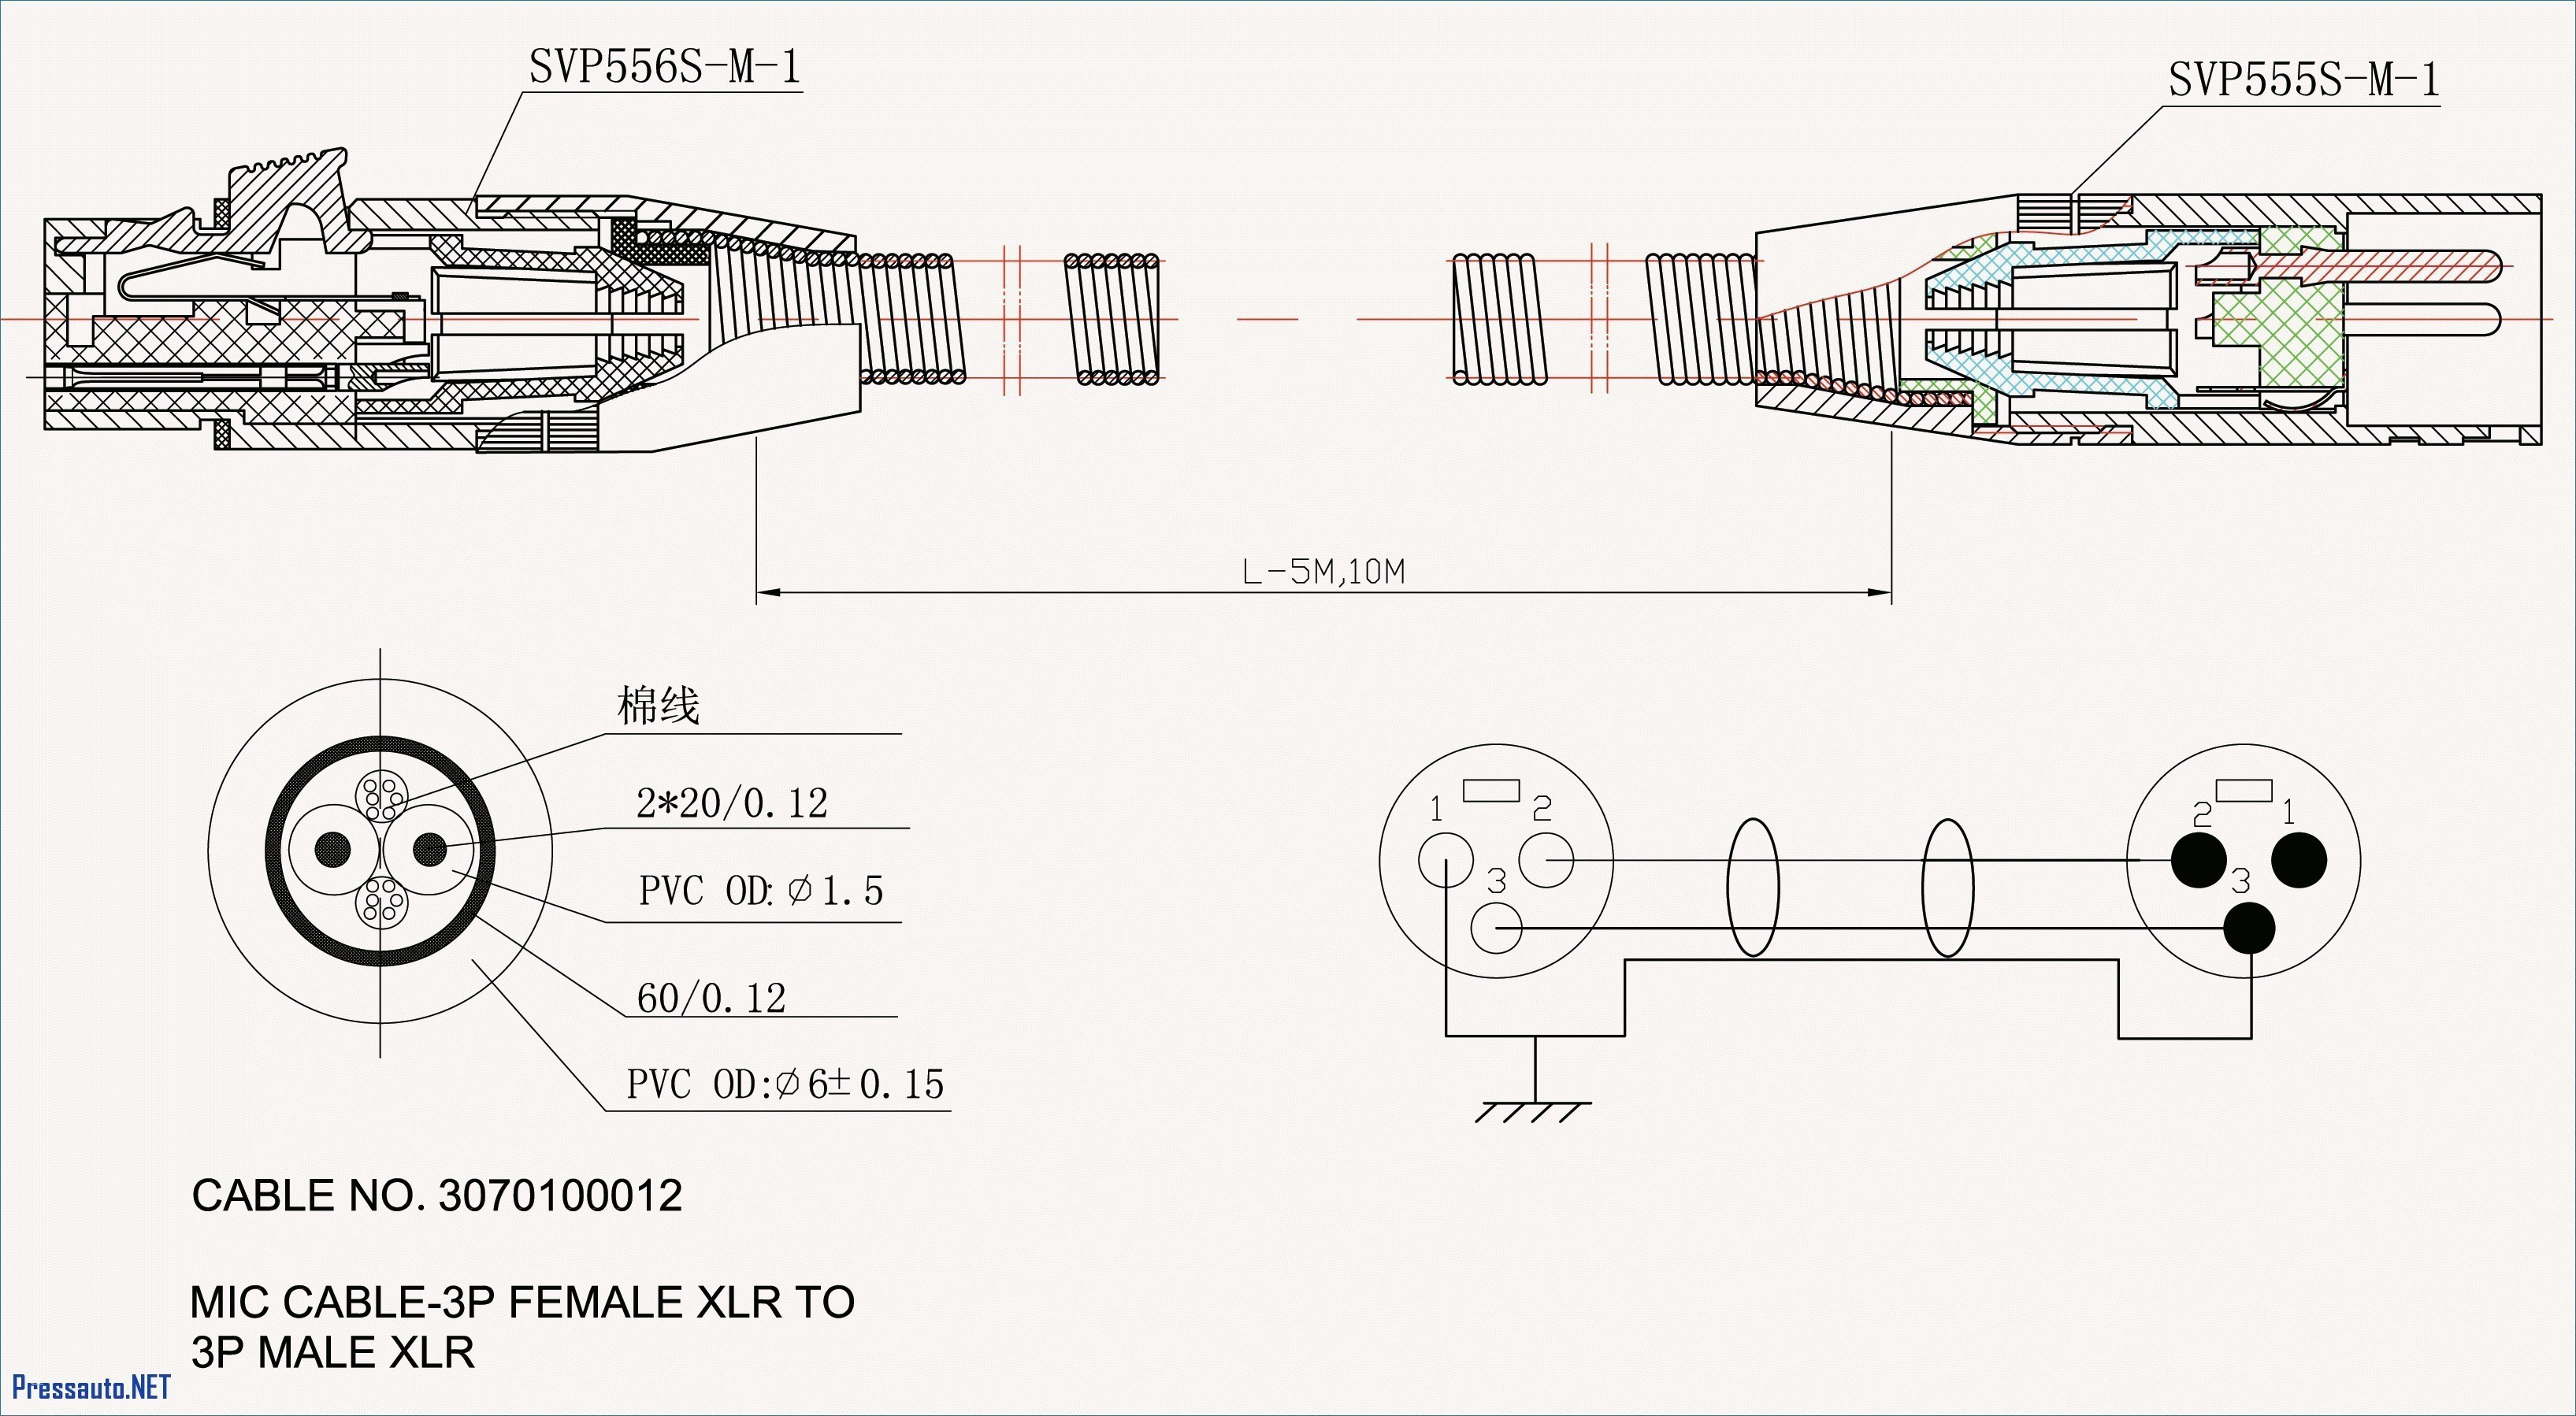 Downlights Wiring Diagram Schematic Diagrams LED Tail Light Wiring Diagram Led Downlight Wiring Diagram